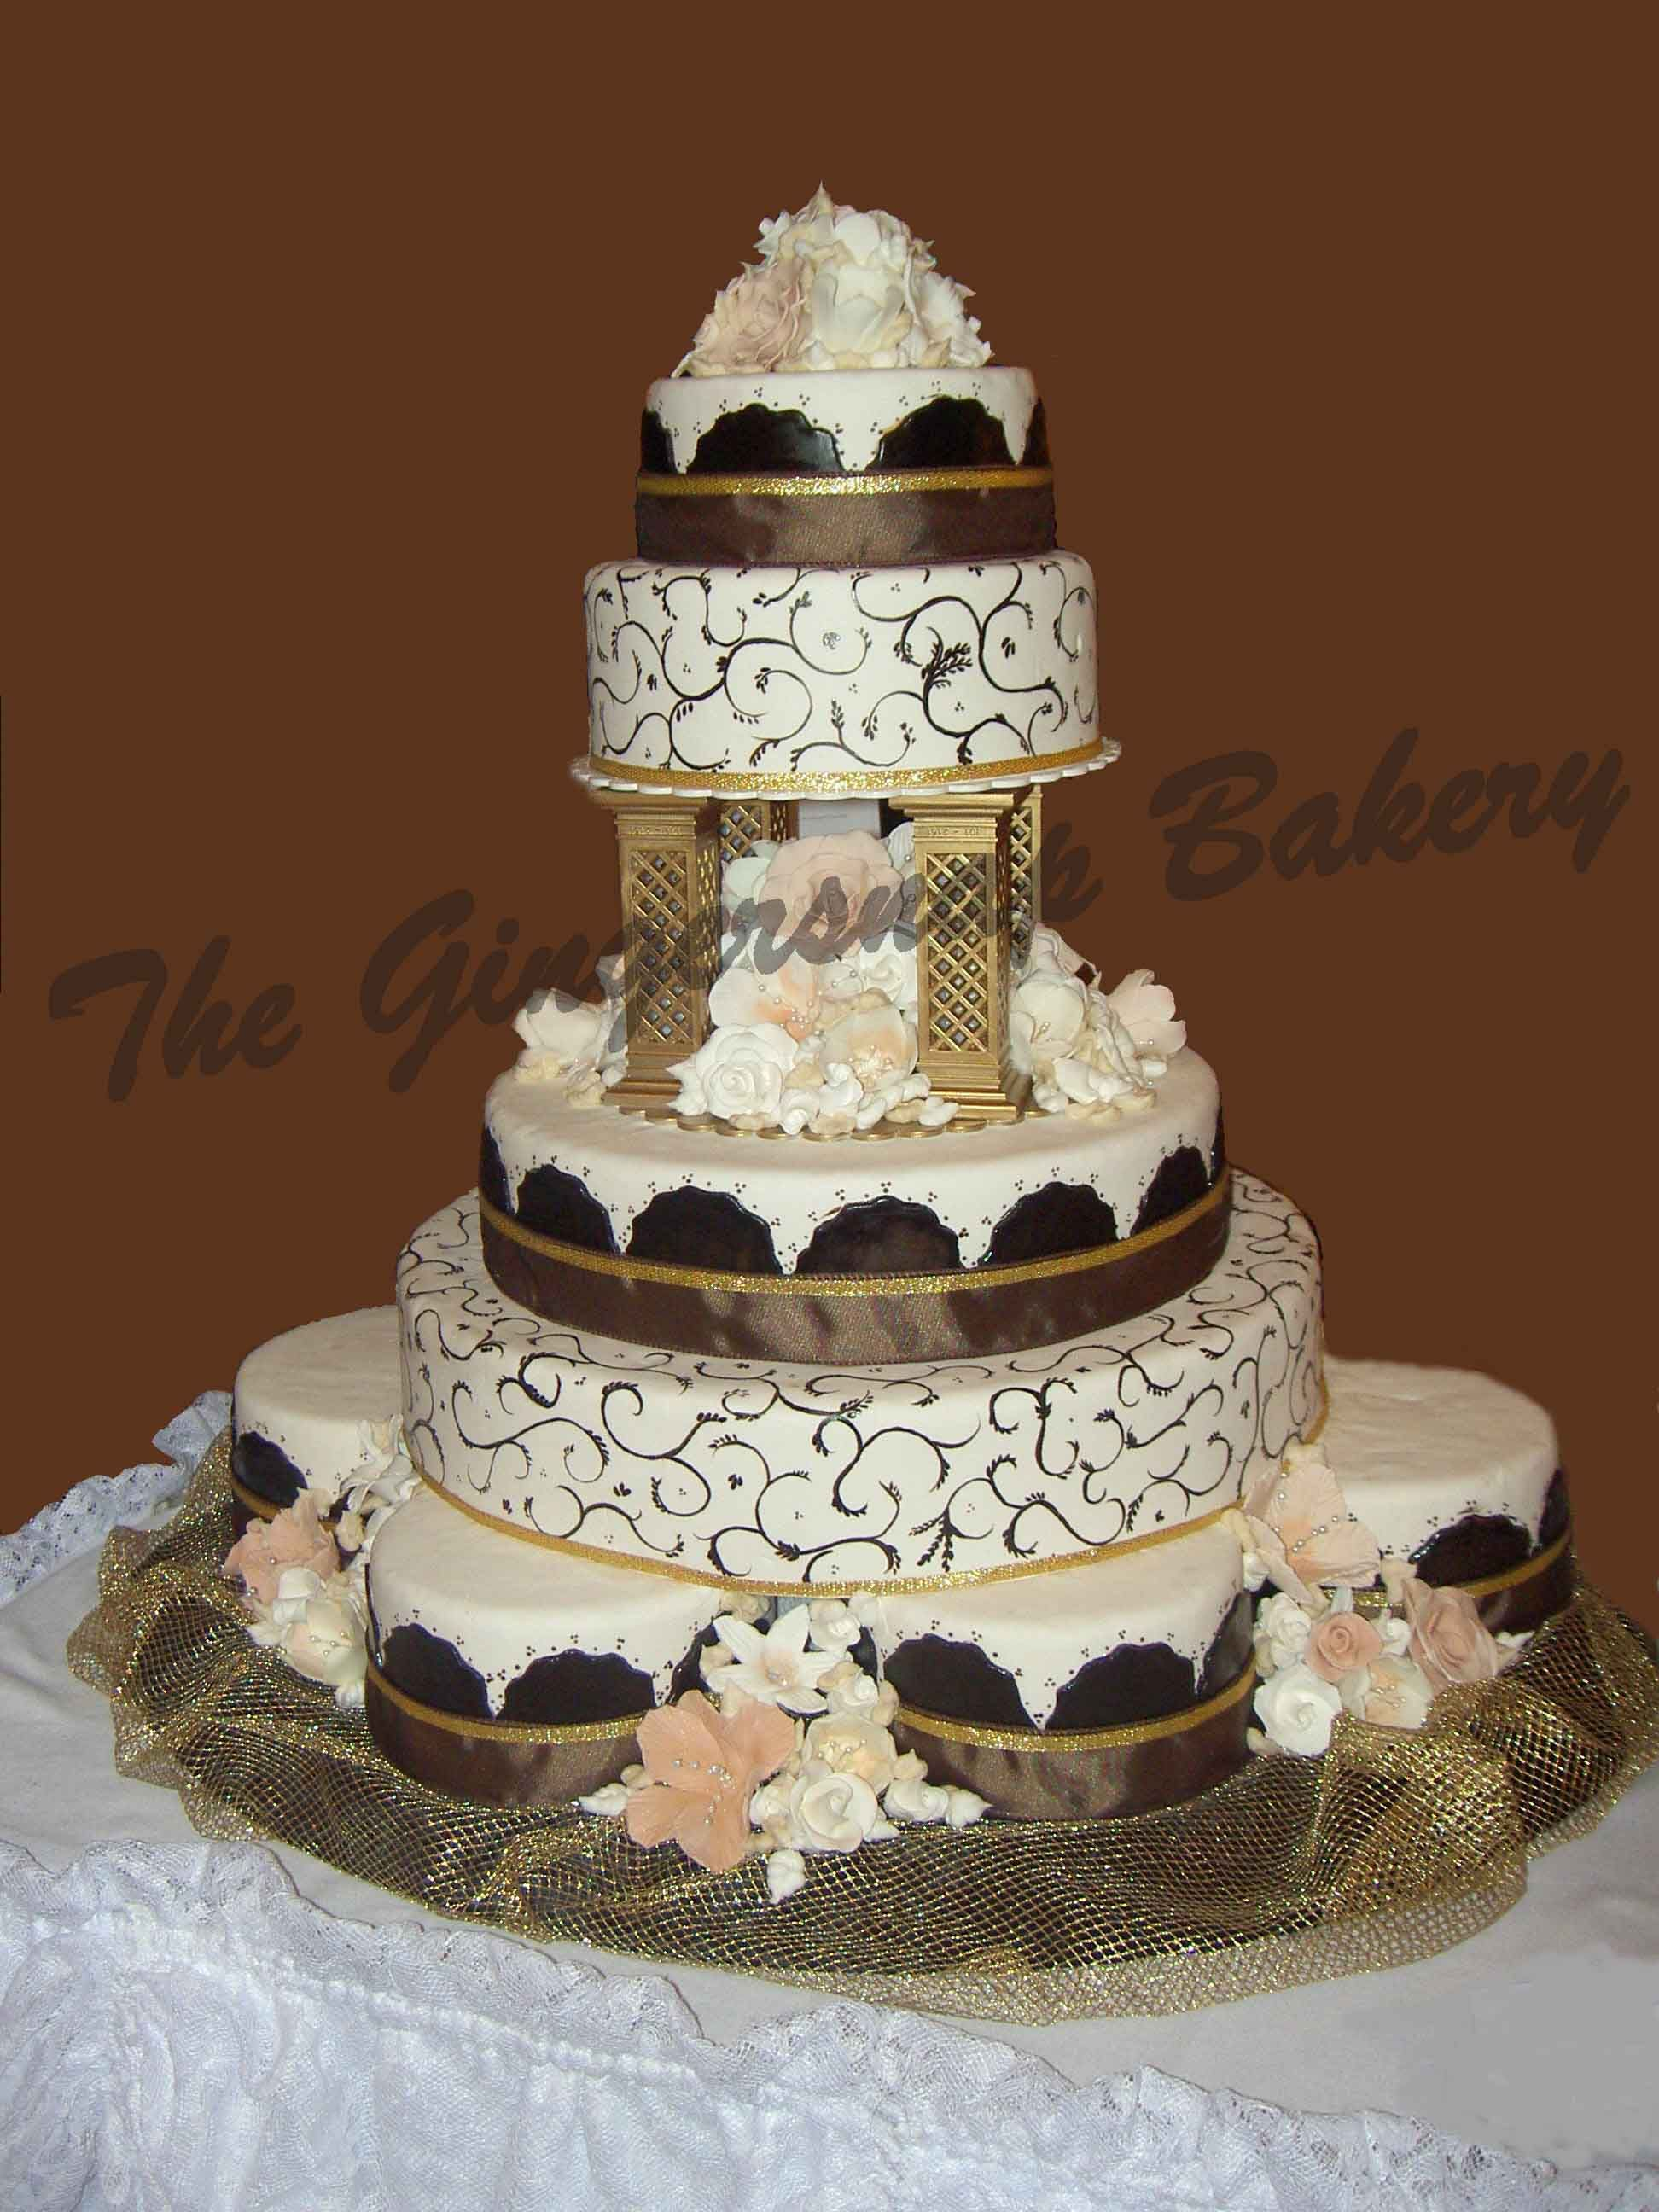 The Gingersnap bakery - Create Your Wedding Cake